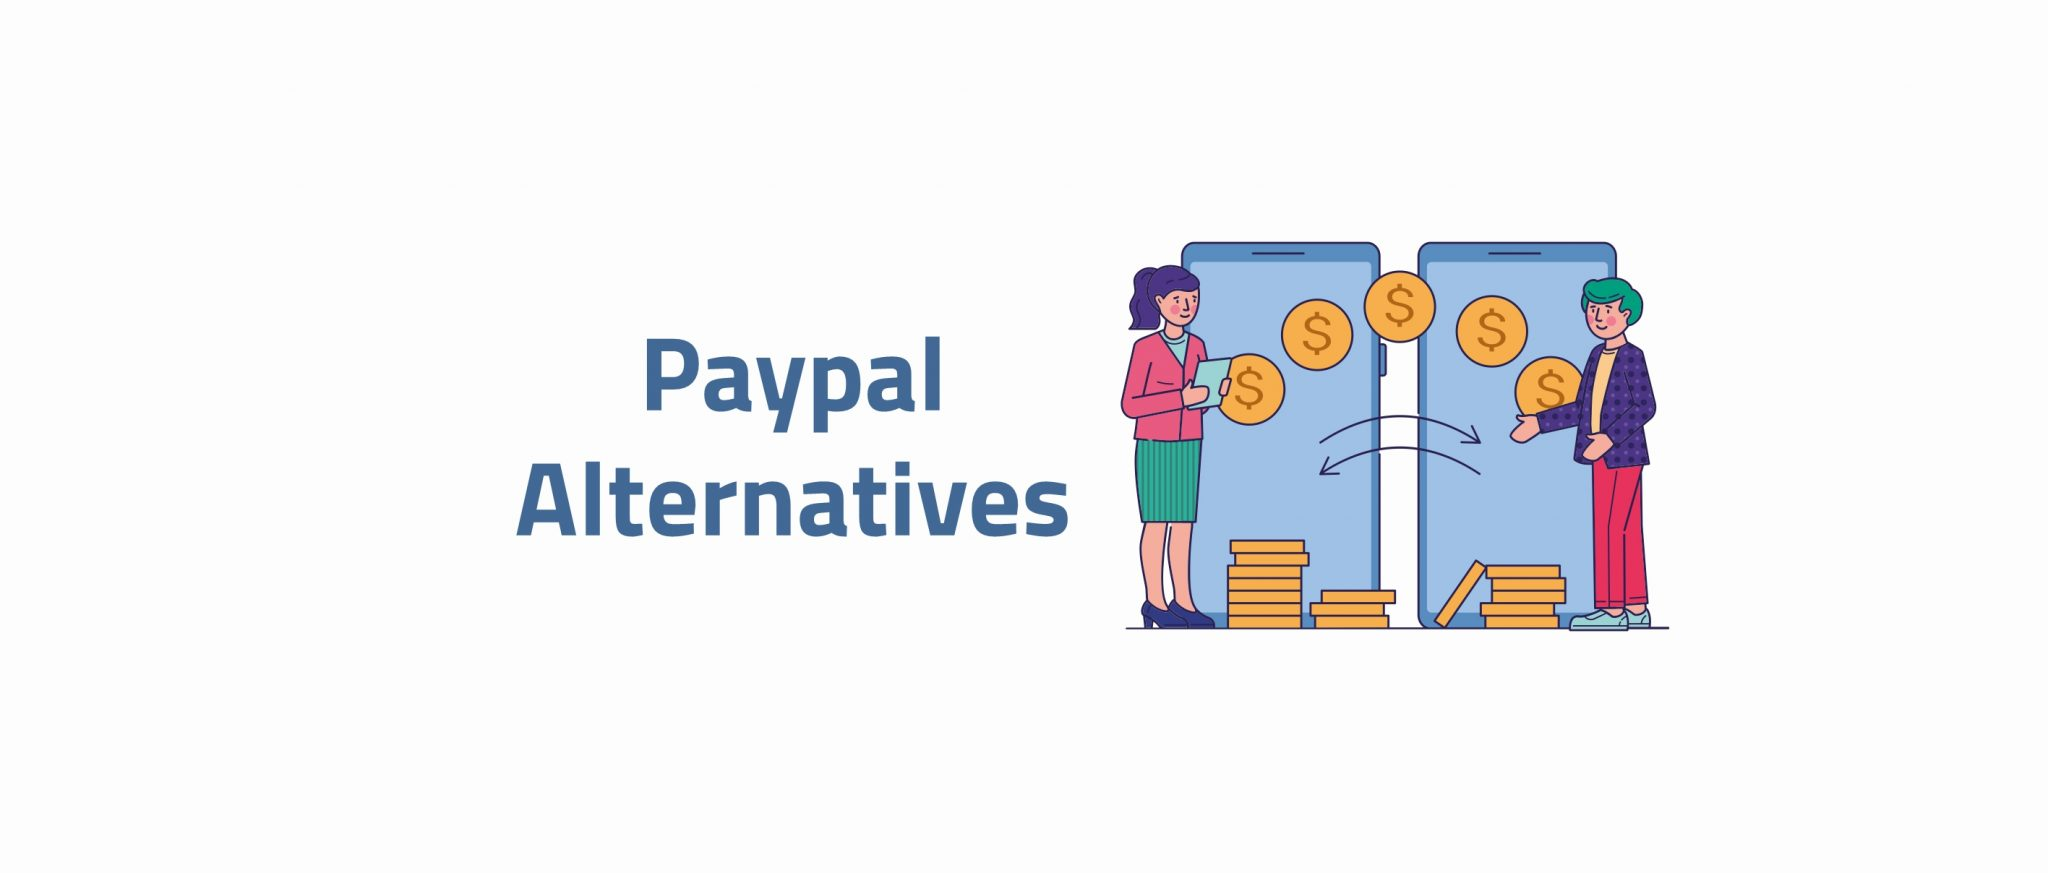 Top paypal alternatives